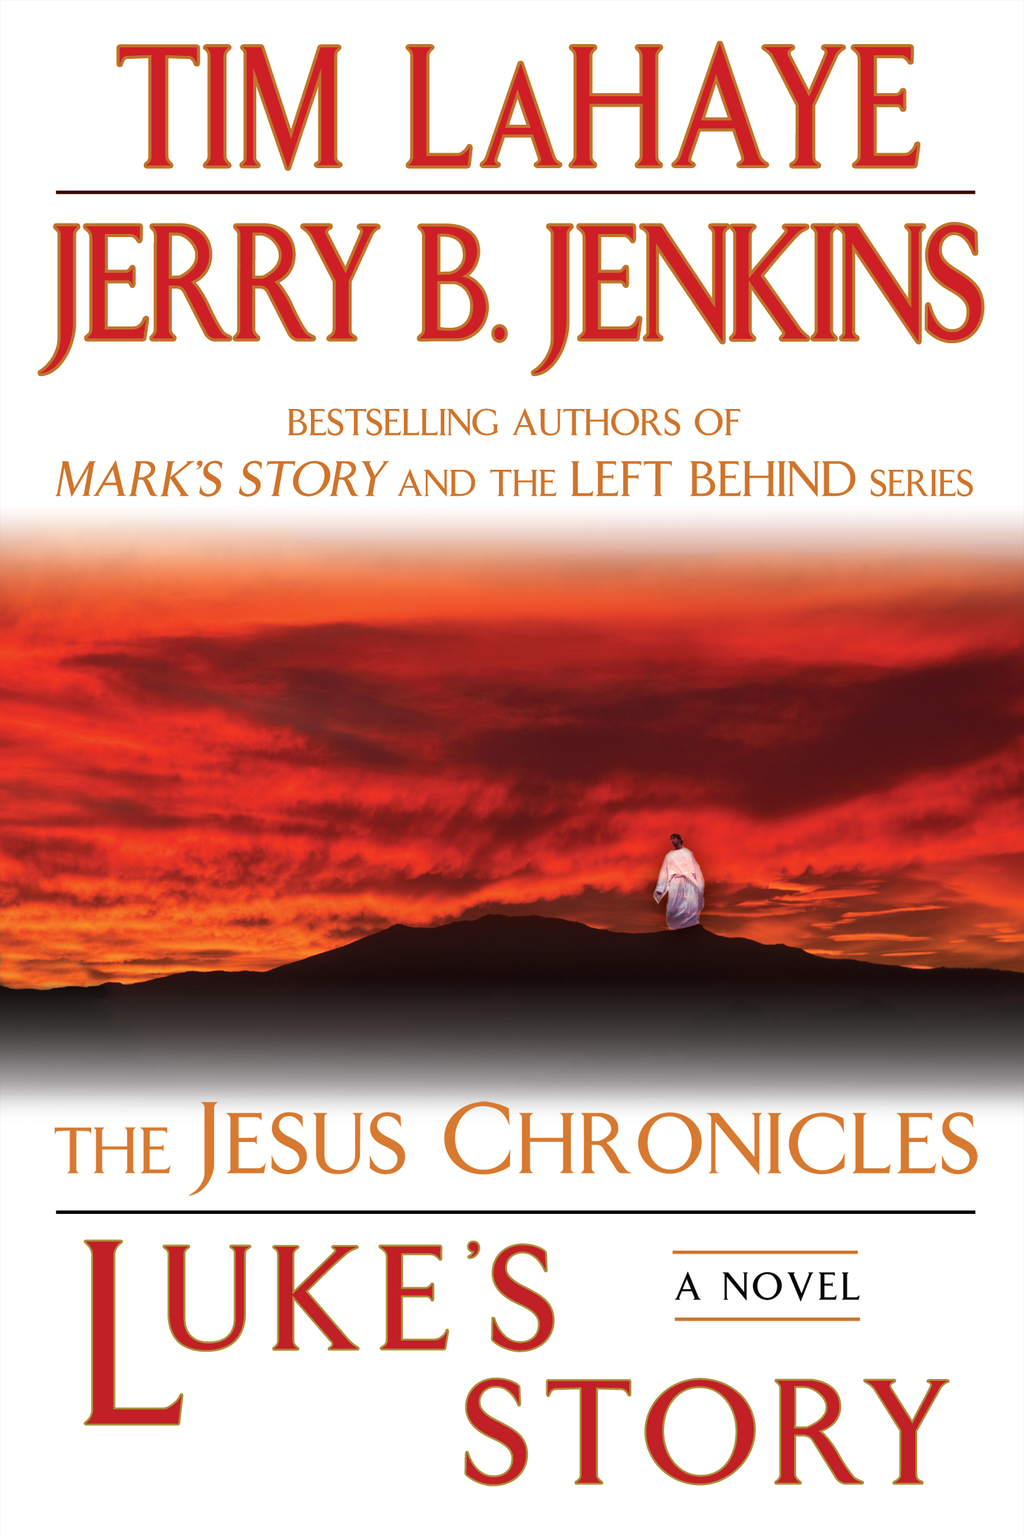 Luke's Story By: Jerry B. Jenkins,Tim LaHaye